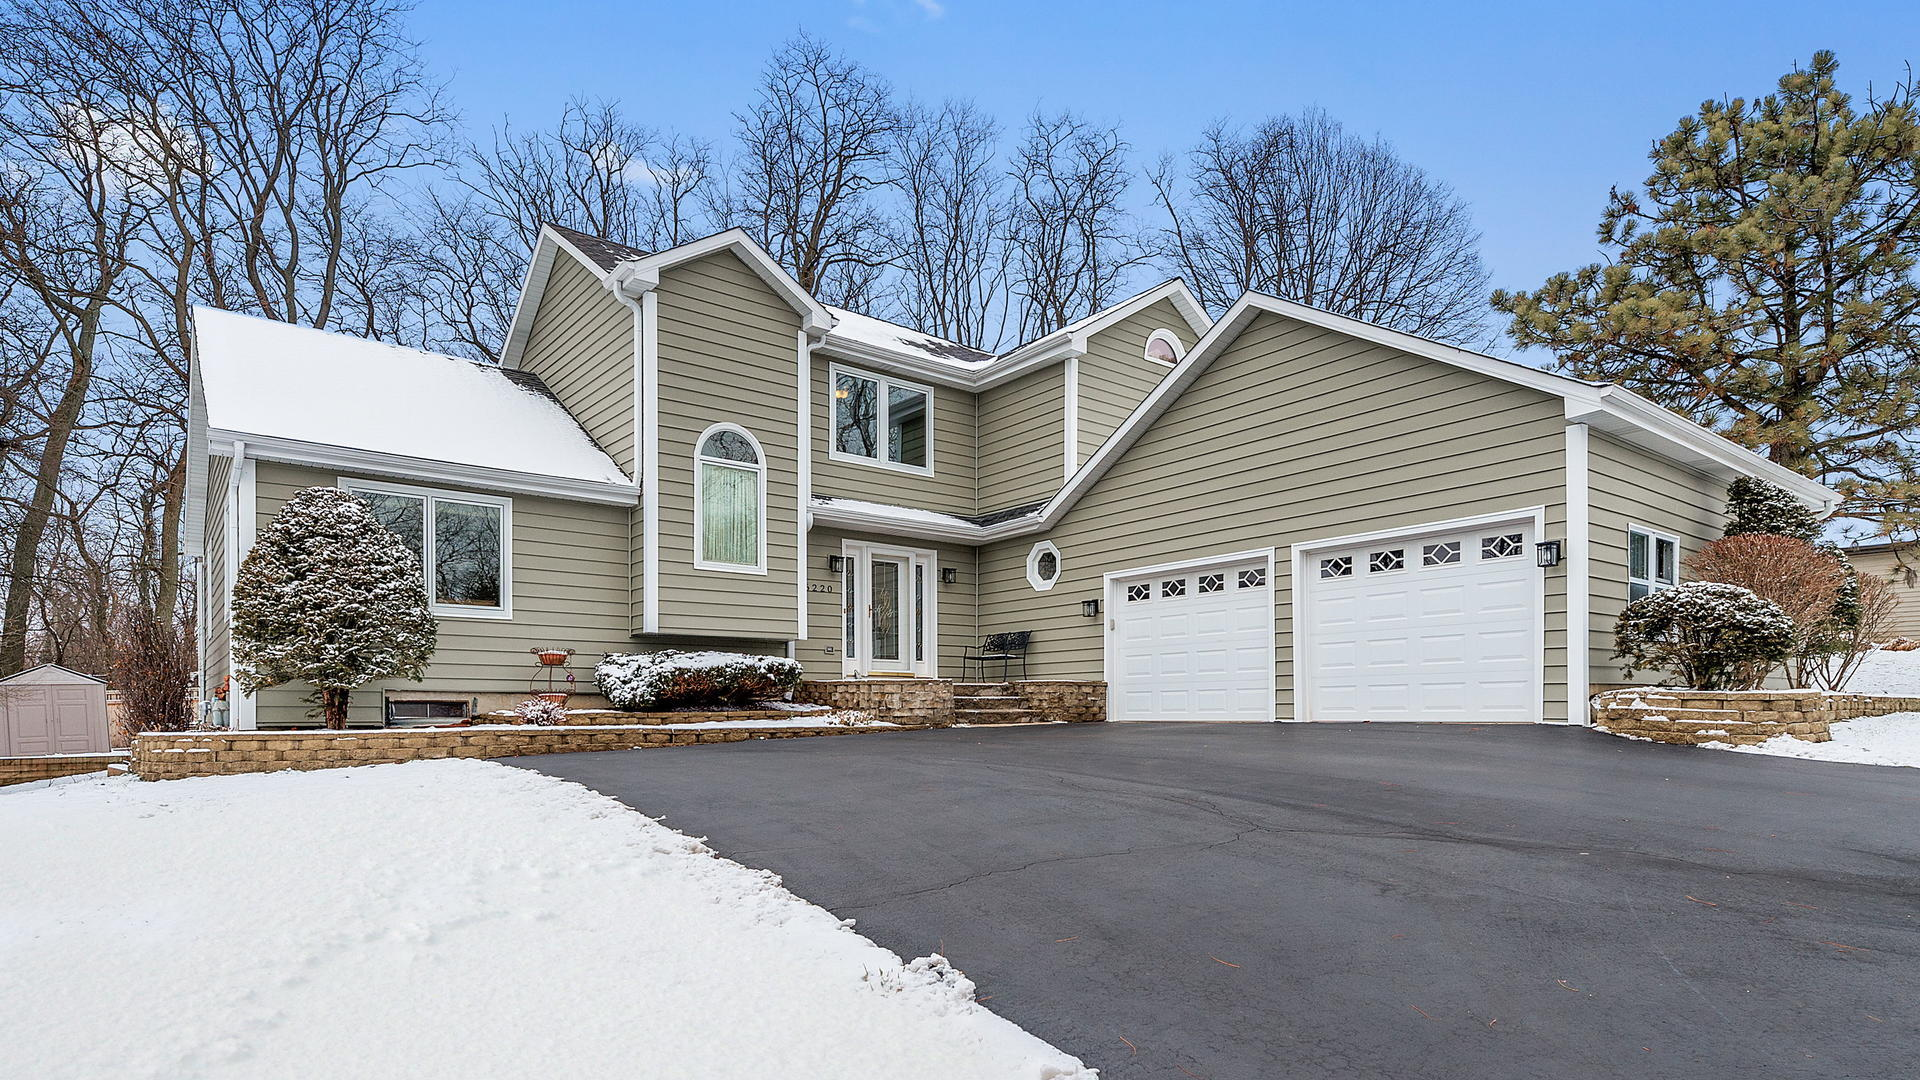 Photo for 6220 Middaugh Avenue, Downers Grove, IL 60516 (MLS # 10603669)